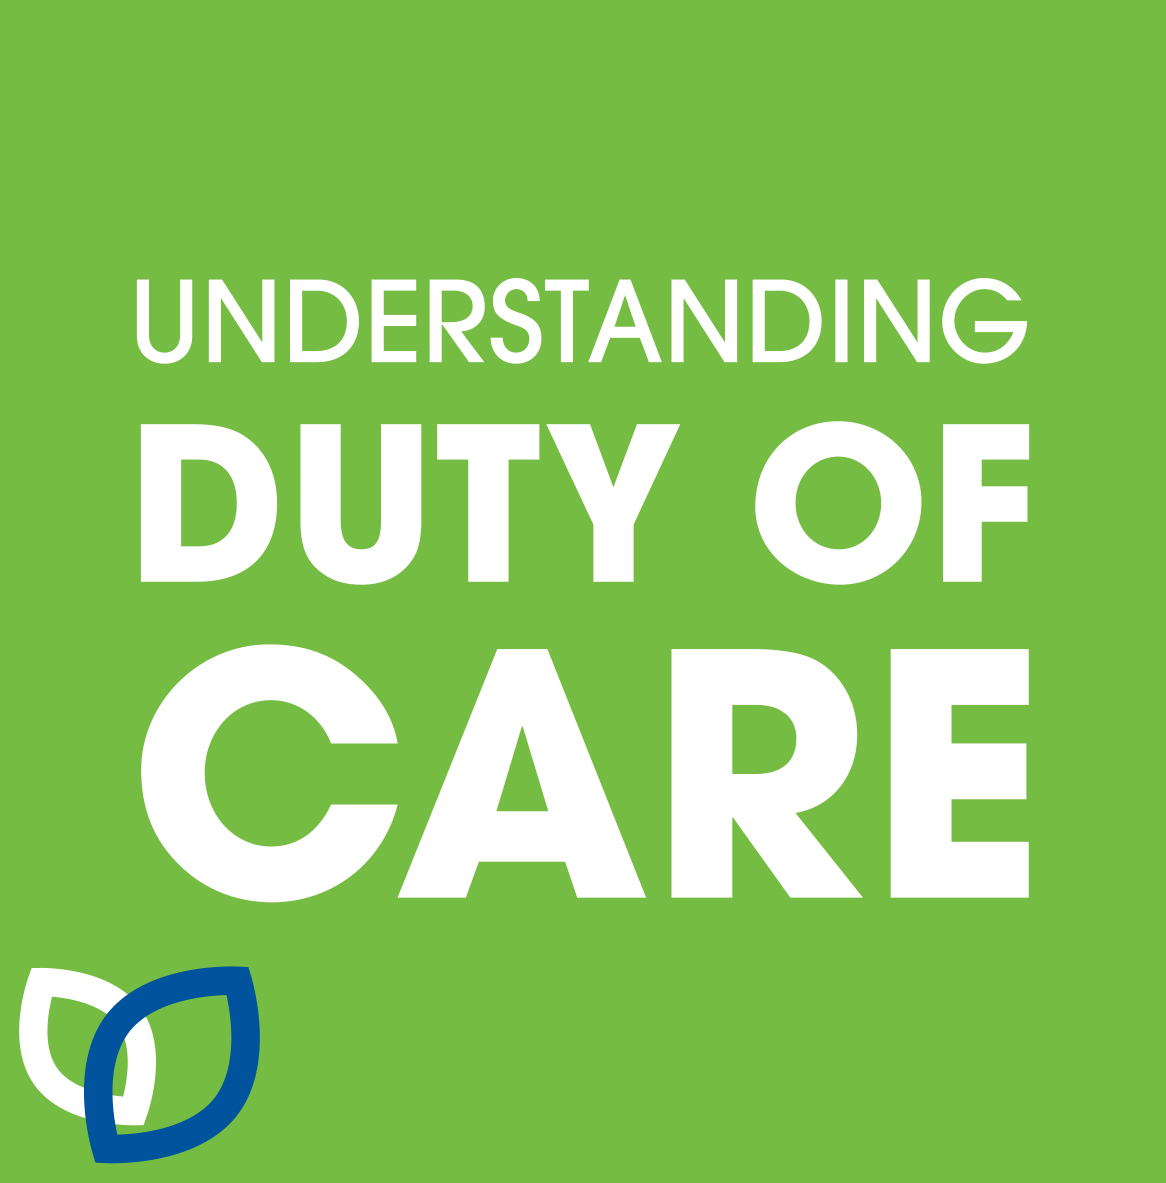 Duty Of Care - Logo Mats